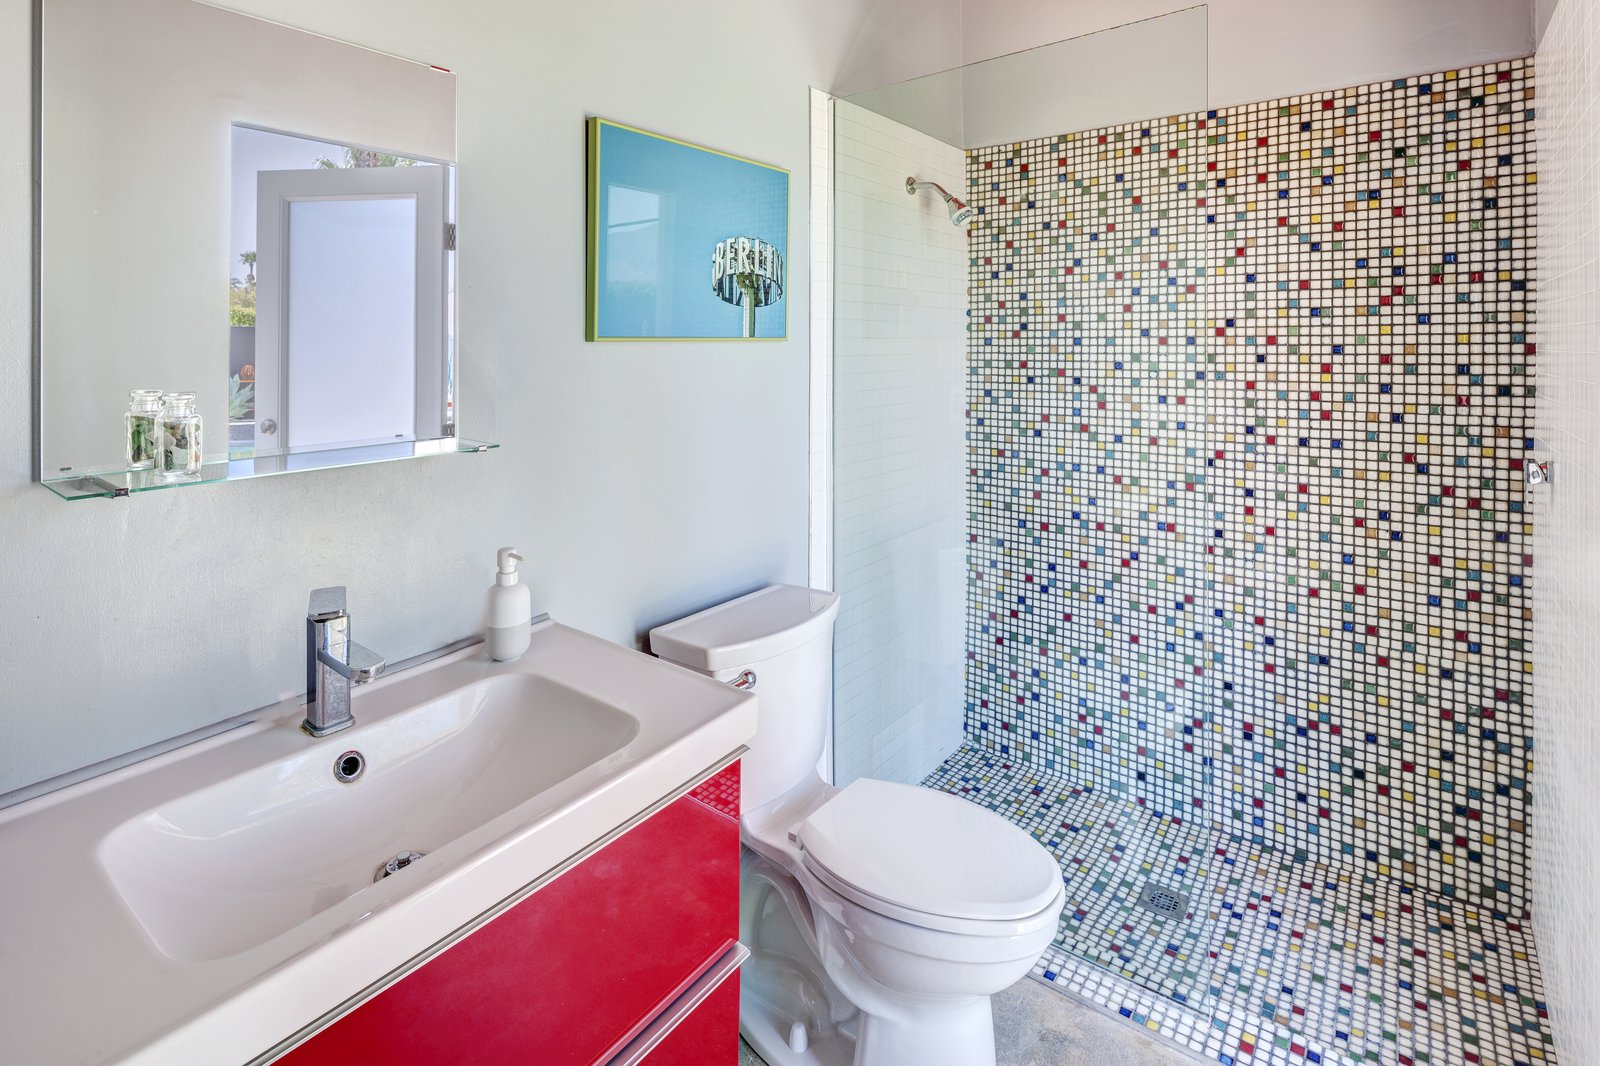 Bath, Undermount, Open, Two Piece, Full, and Concrete  Bath Two Piece Undermount Photos from A Donald Wexler-Designed Midcentury Home in Palm Springs Asks $599K